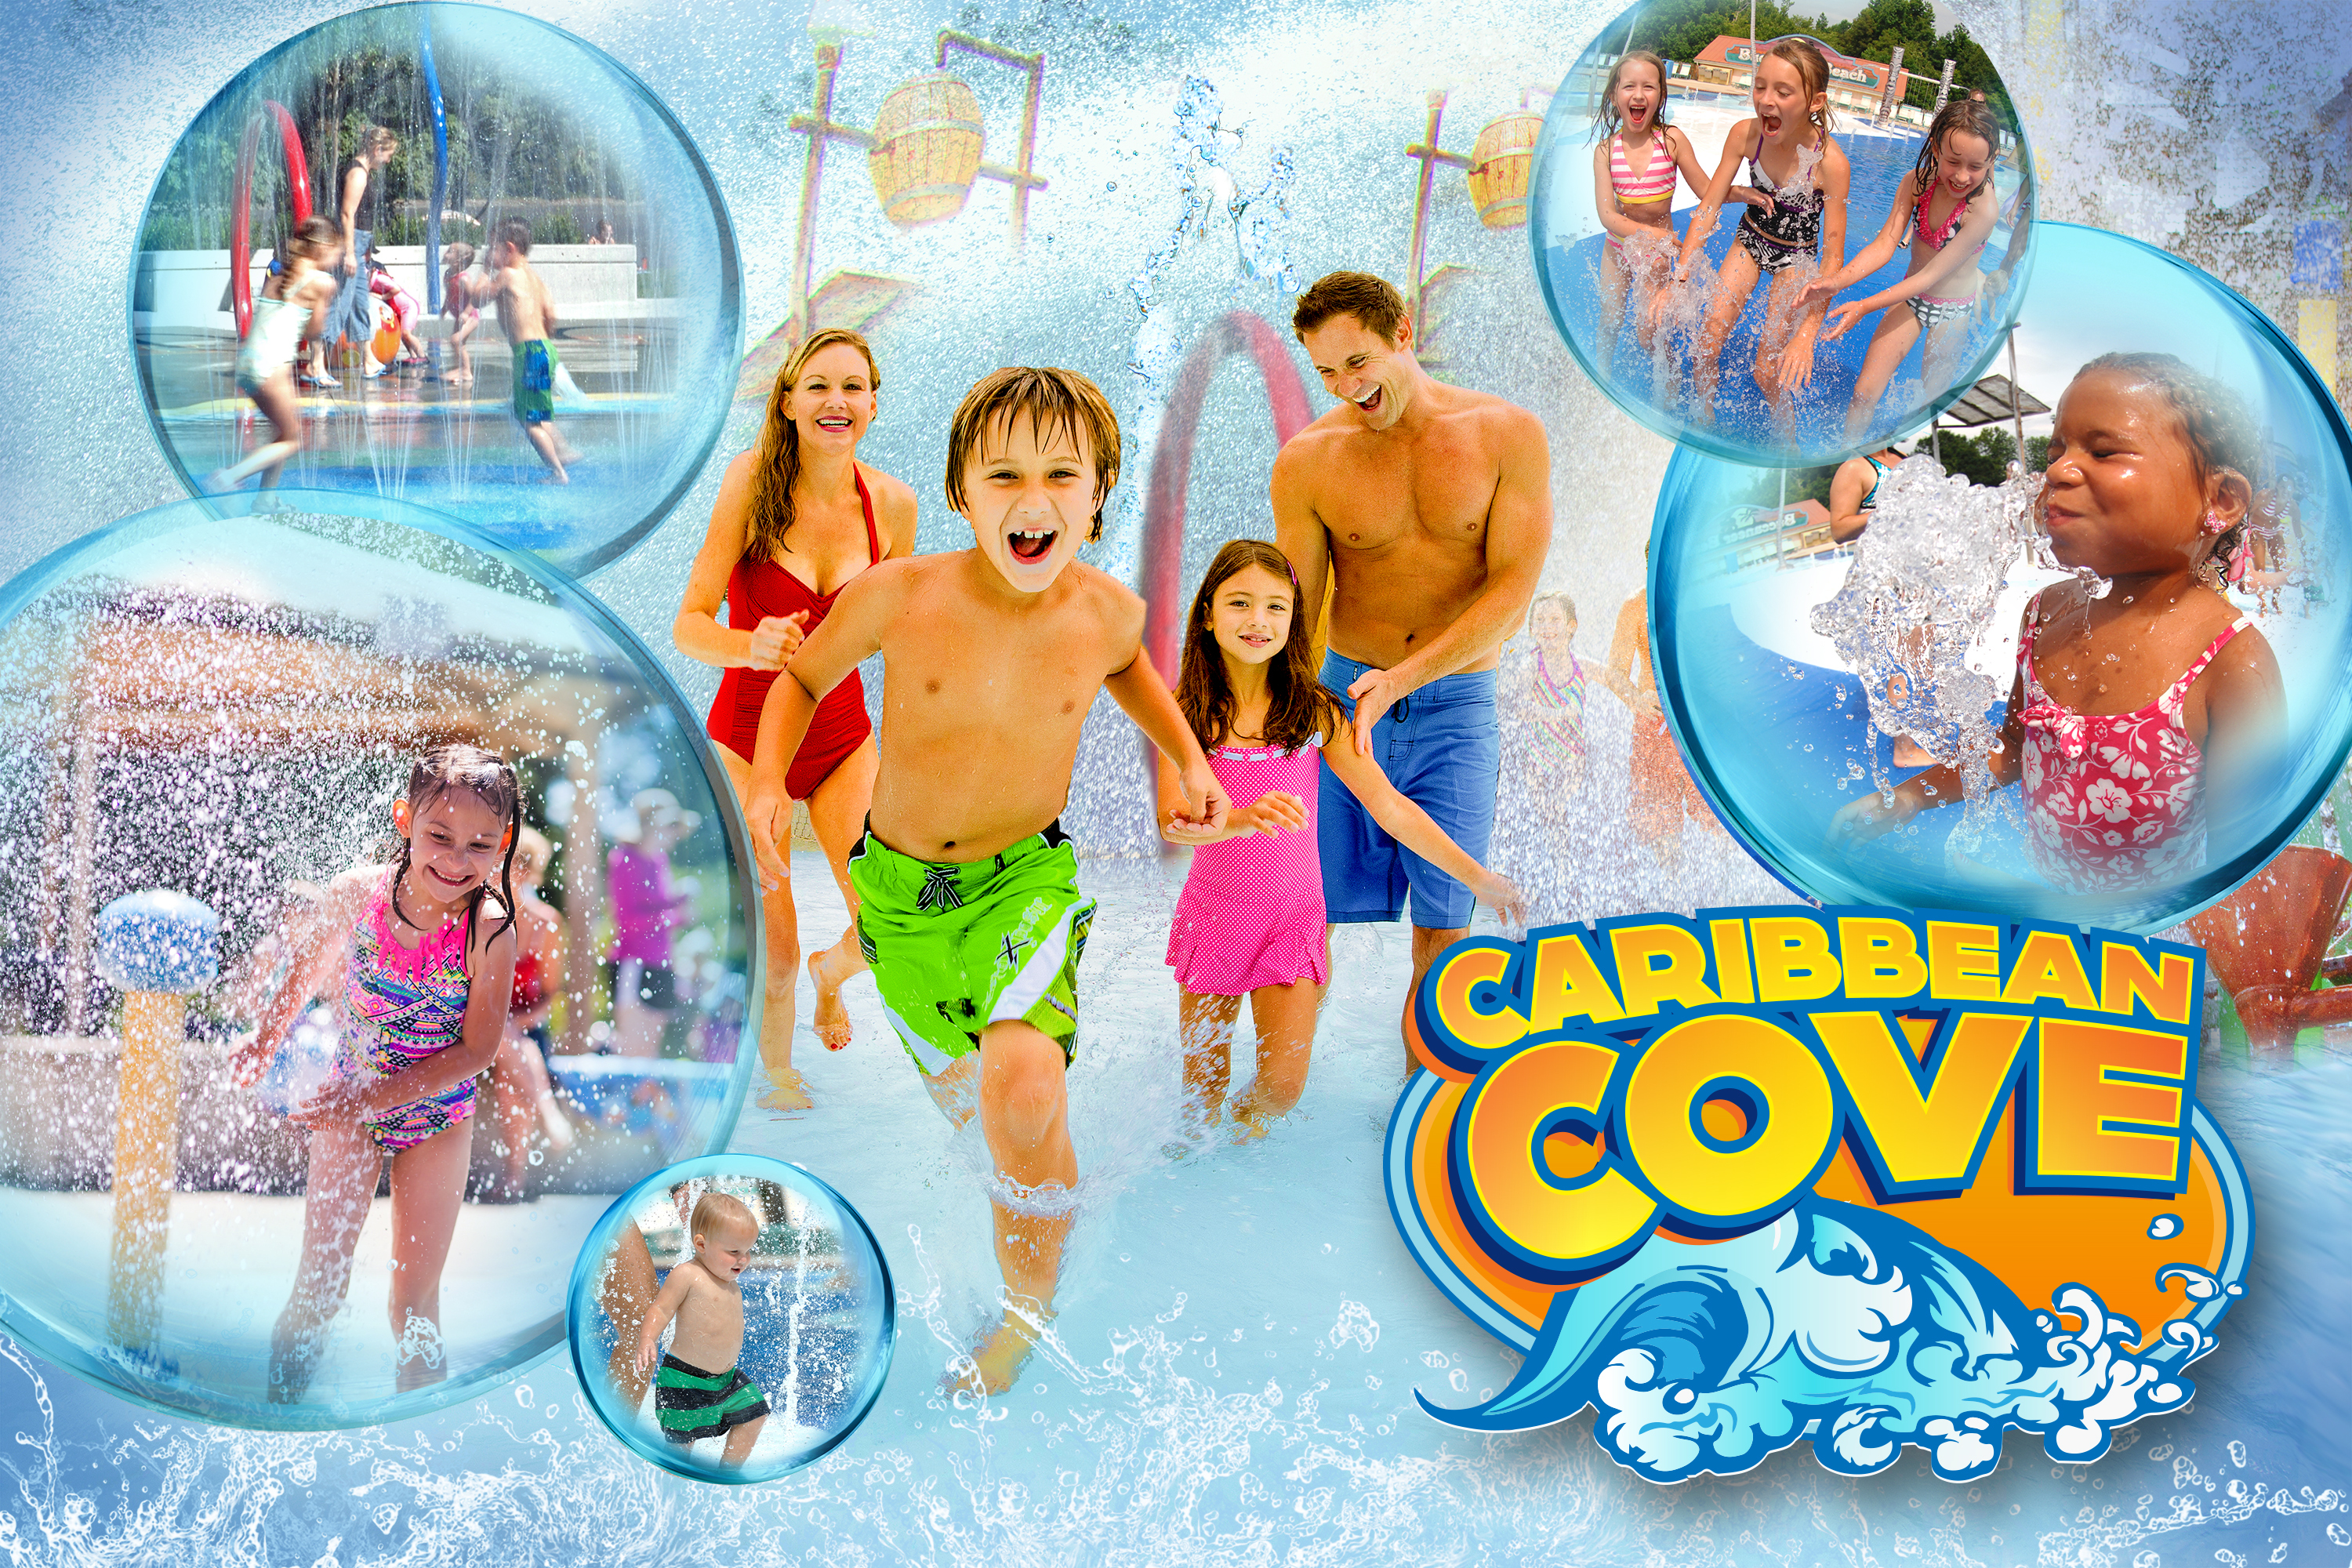 Where to Play in the Caribbean